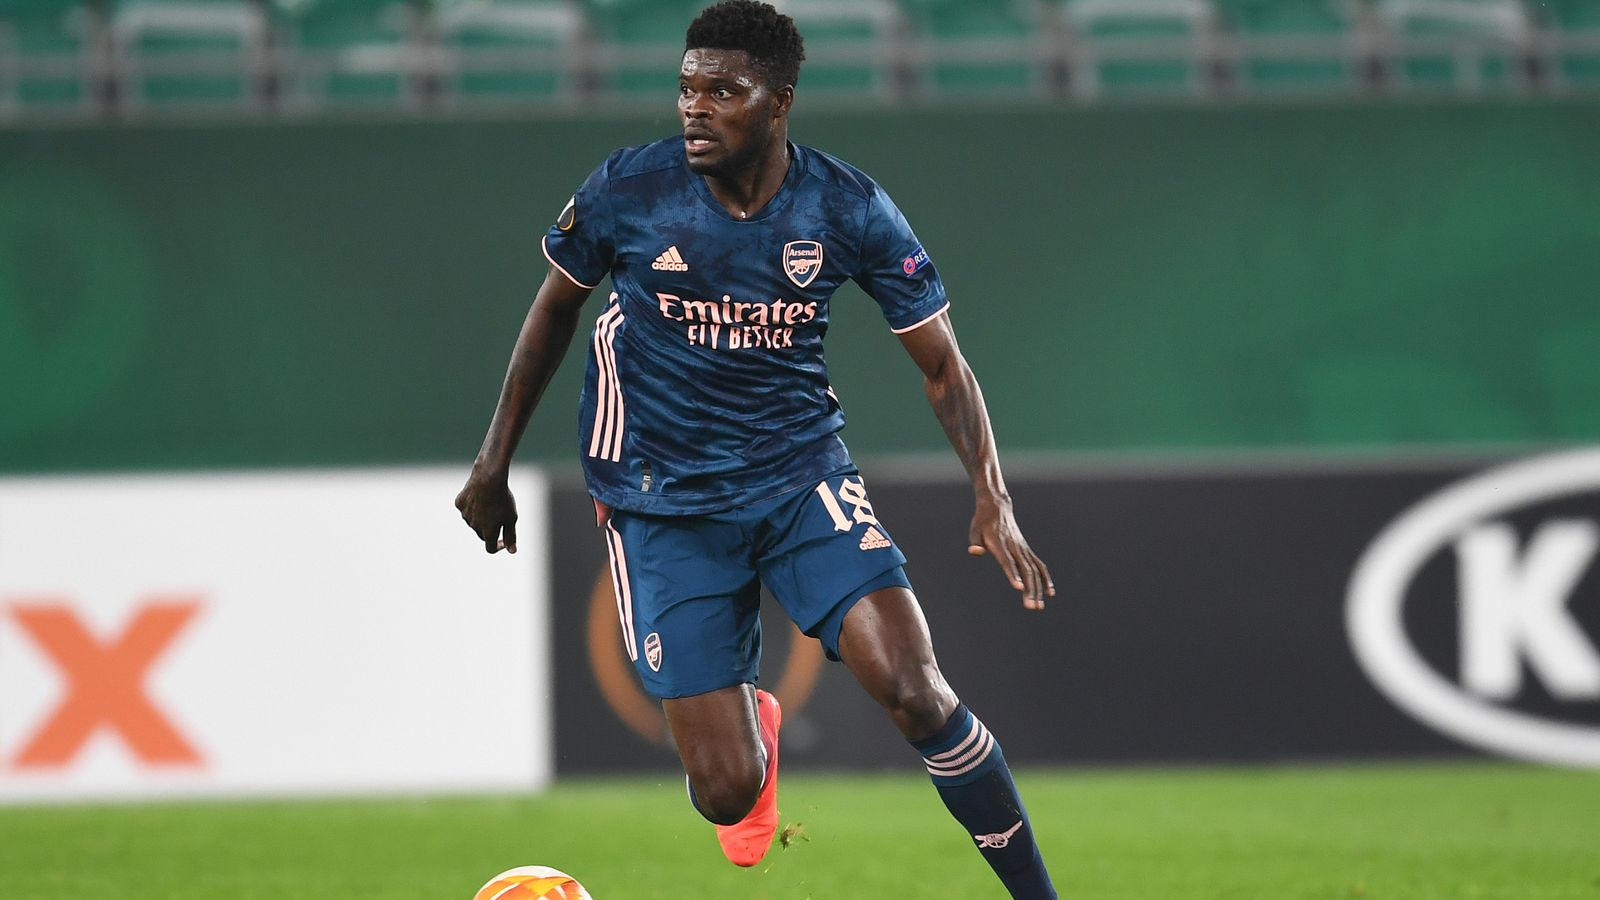 Europa League hits and misses: Thomas Partey's eye-catching Arsenal bow and Tottenham's strength in depth